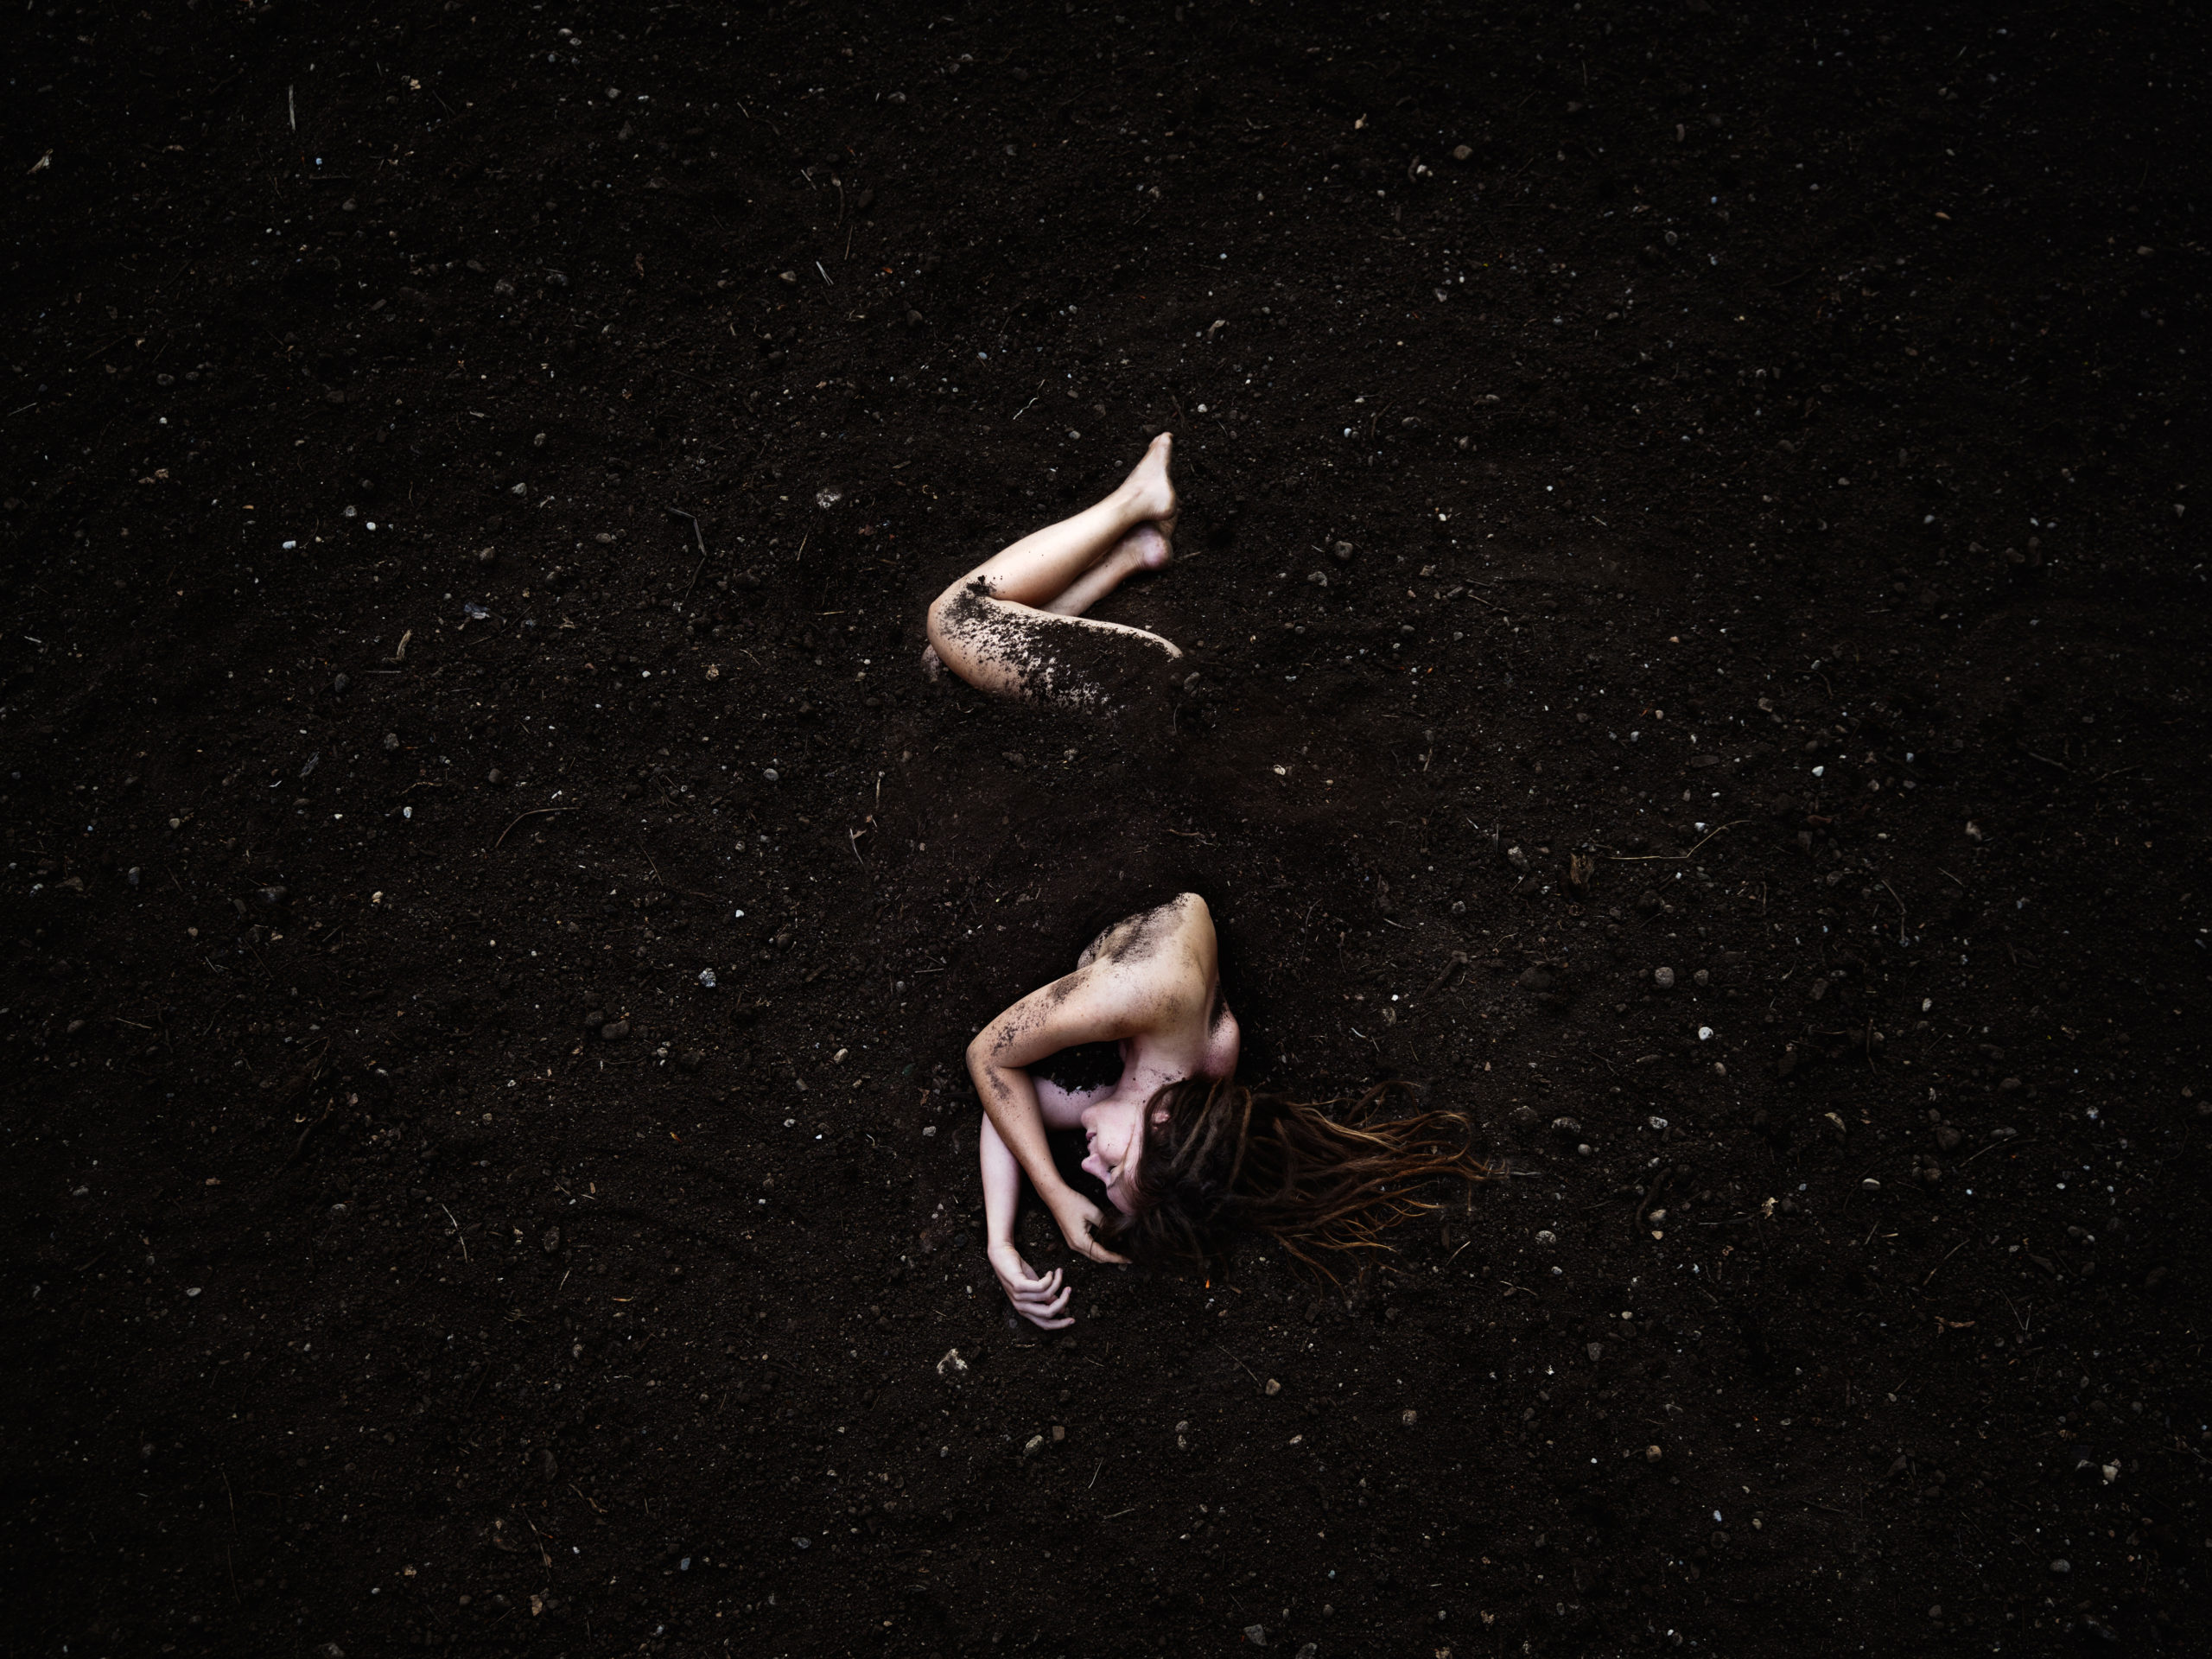 Mother earth self portrait photography, depicting a woman almost completely covered by soil, only her bare upper body and legs are visible among the dark surroundings.